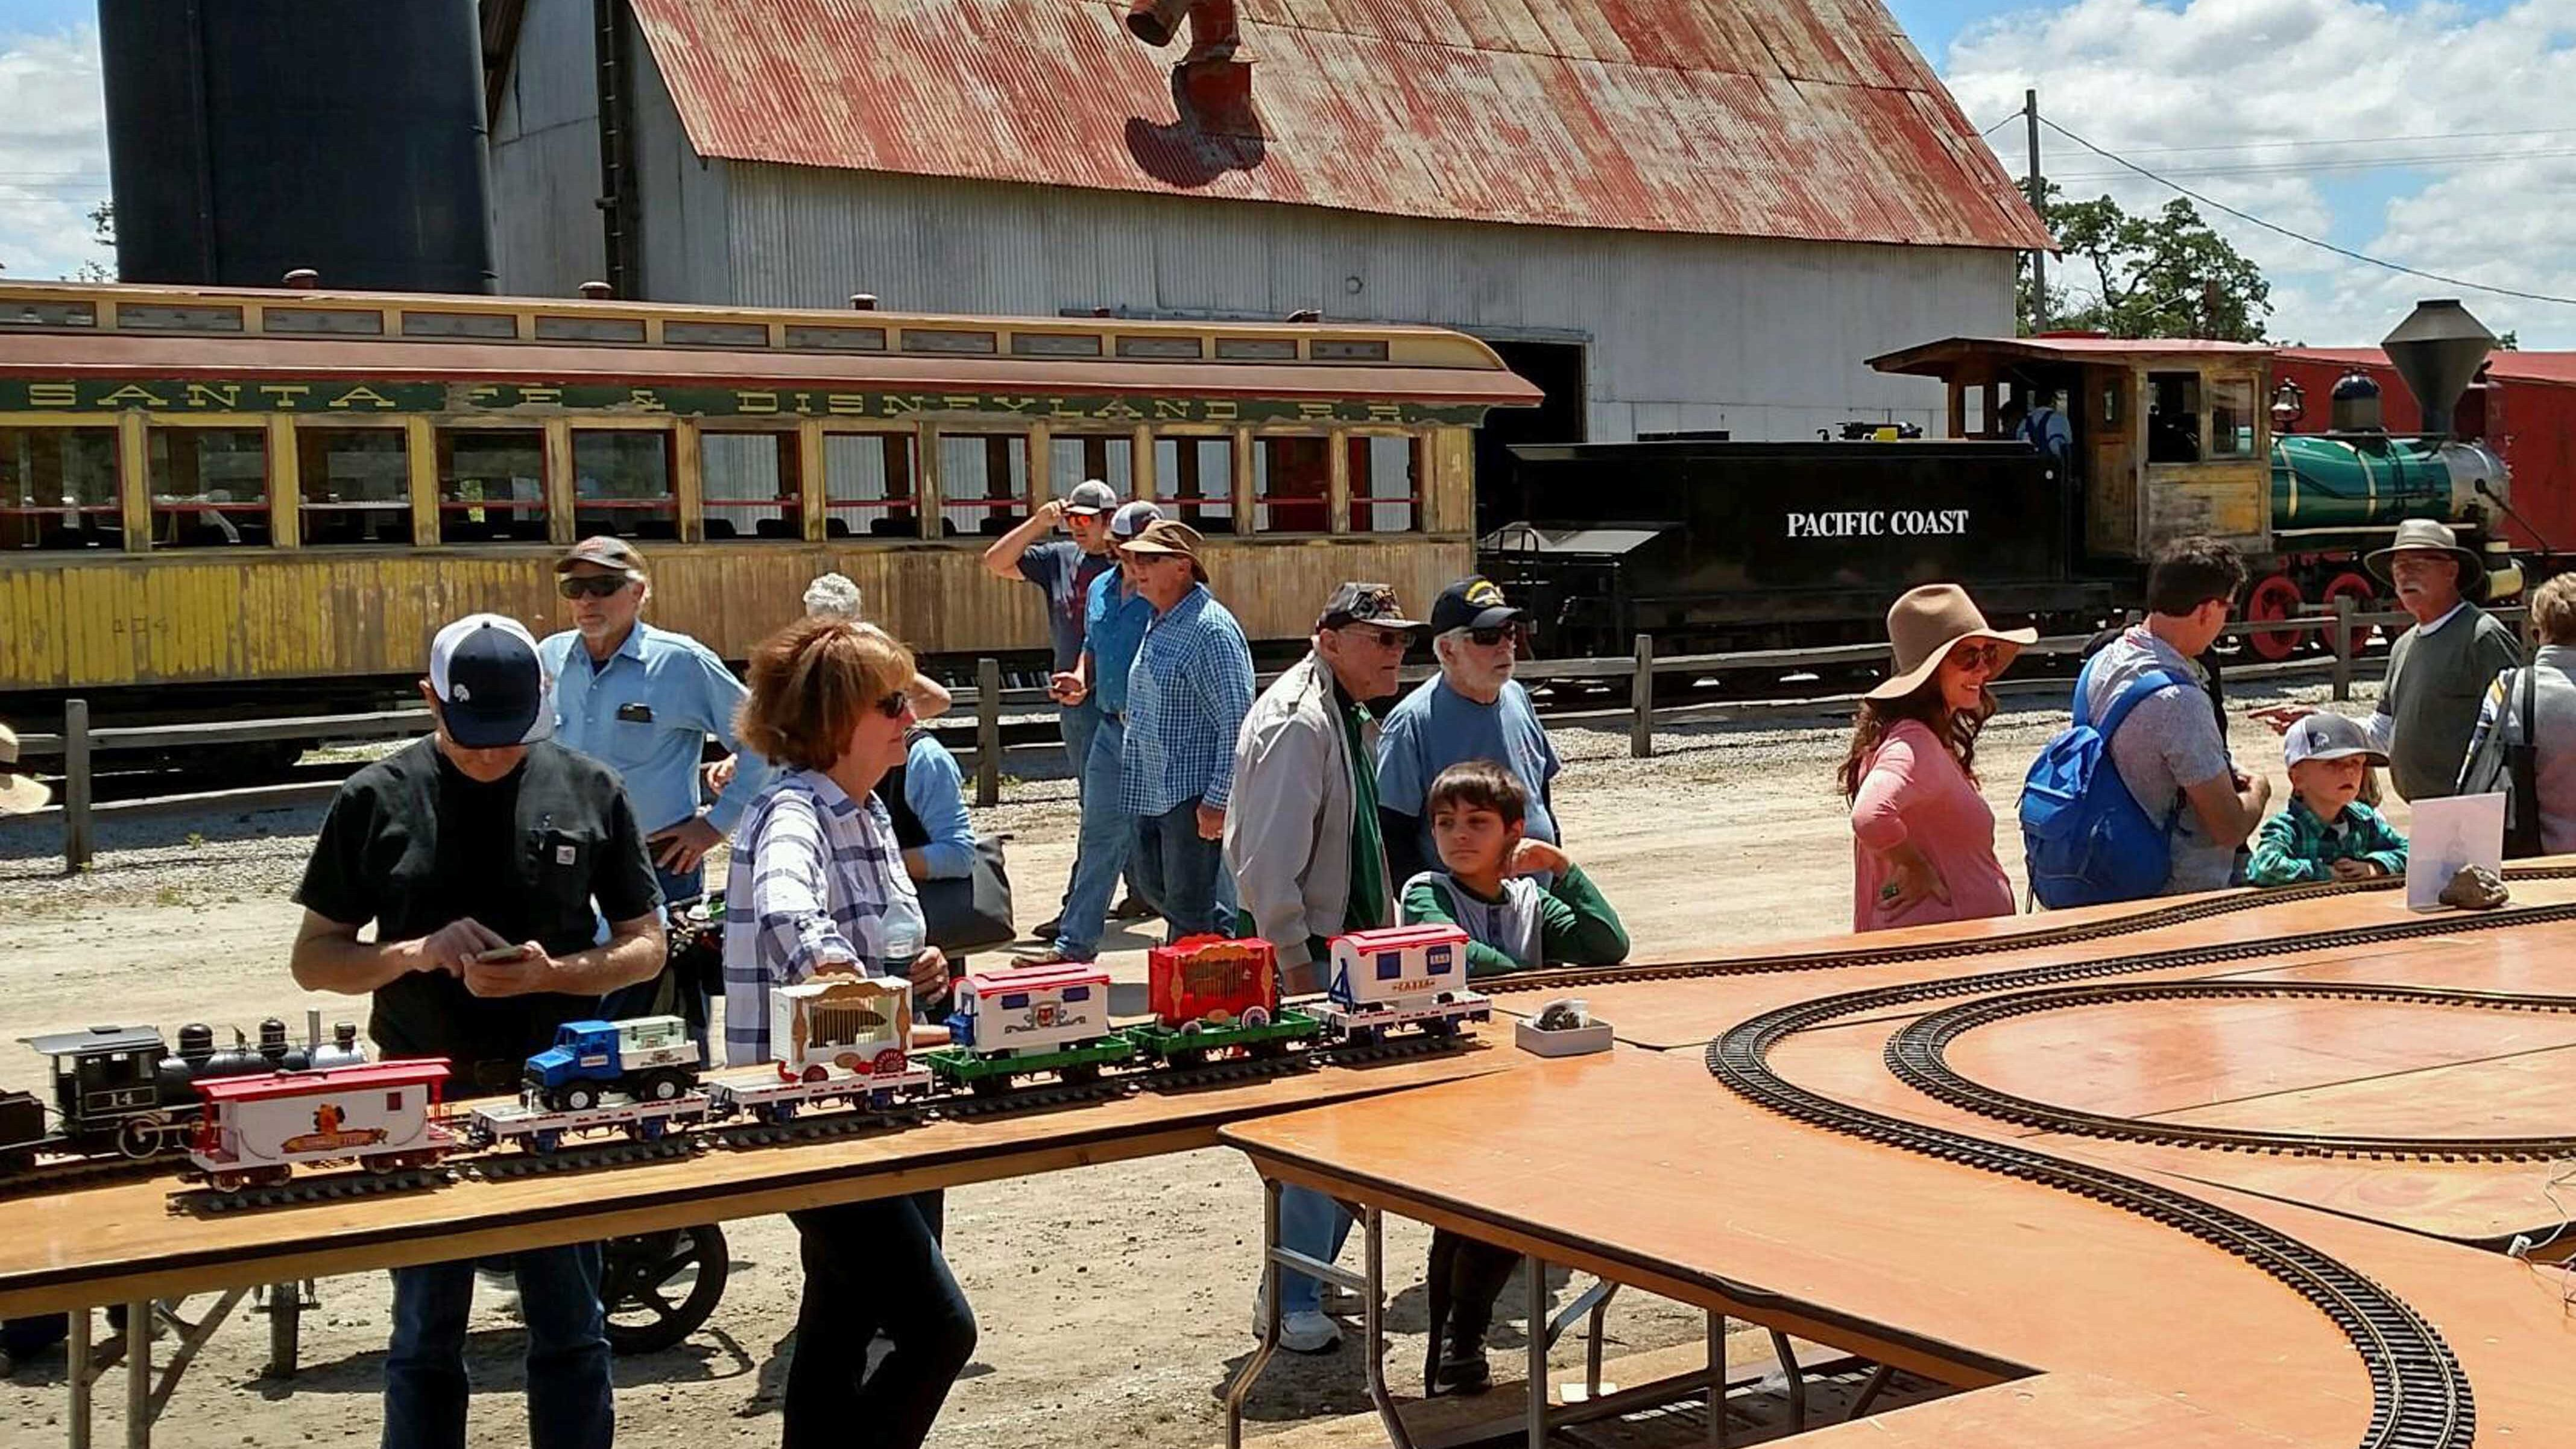 People watch large scale model trains